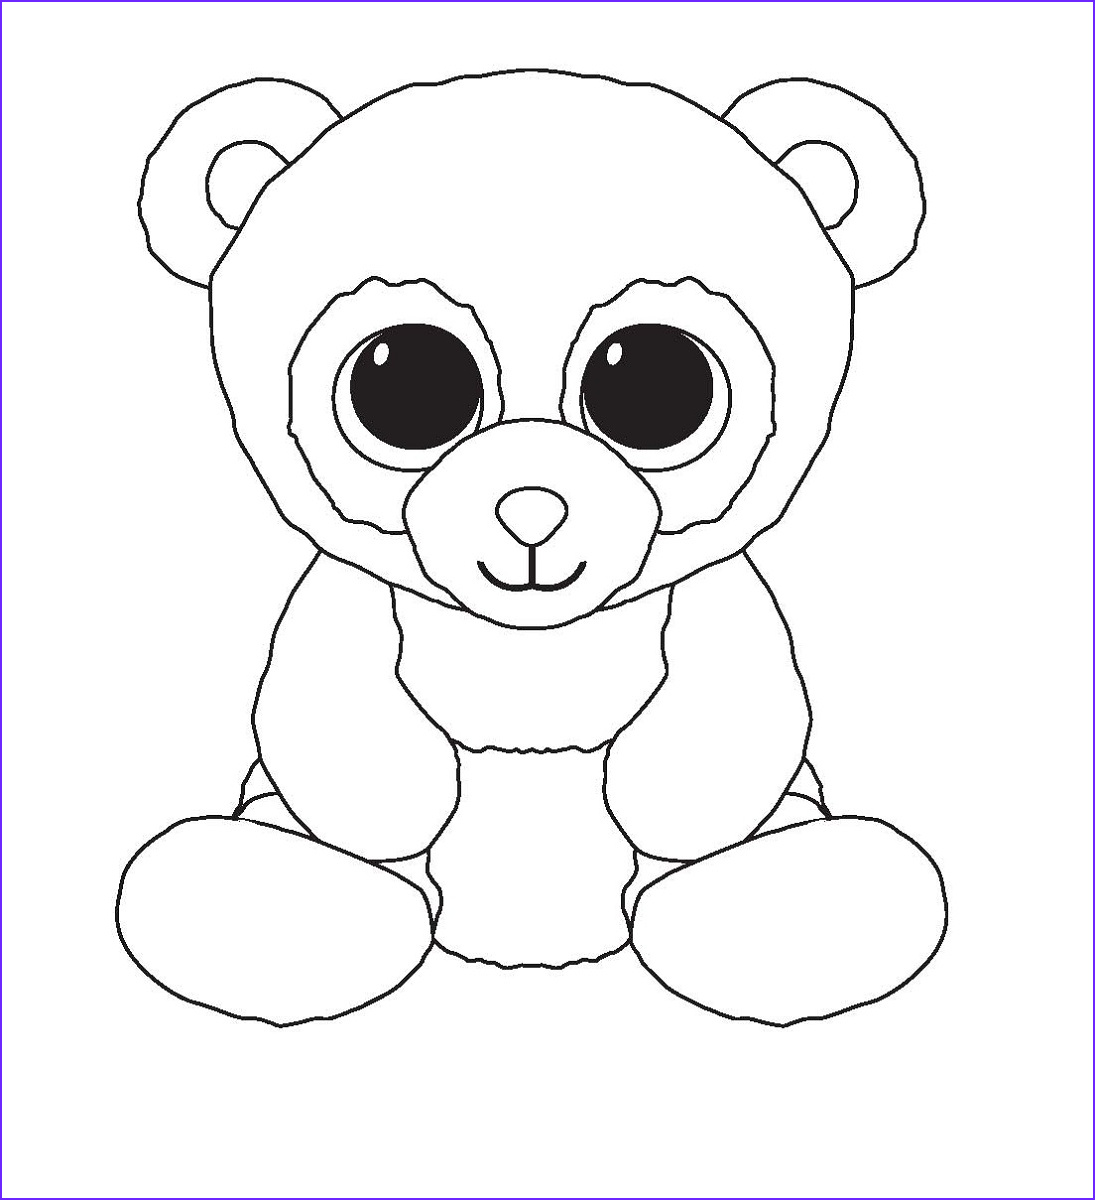 Ty Beanie Boos Coloring Page Inspirational Photos Beanie Boo Coloring Pages for Kids